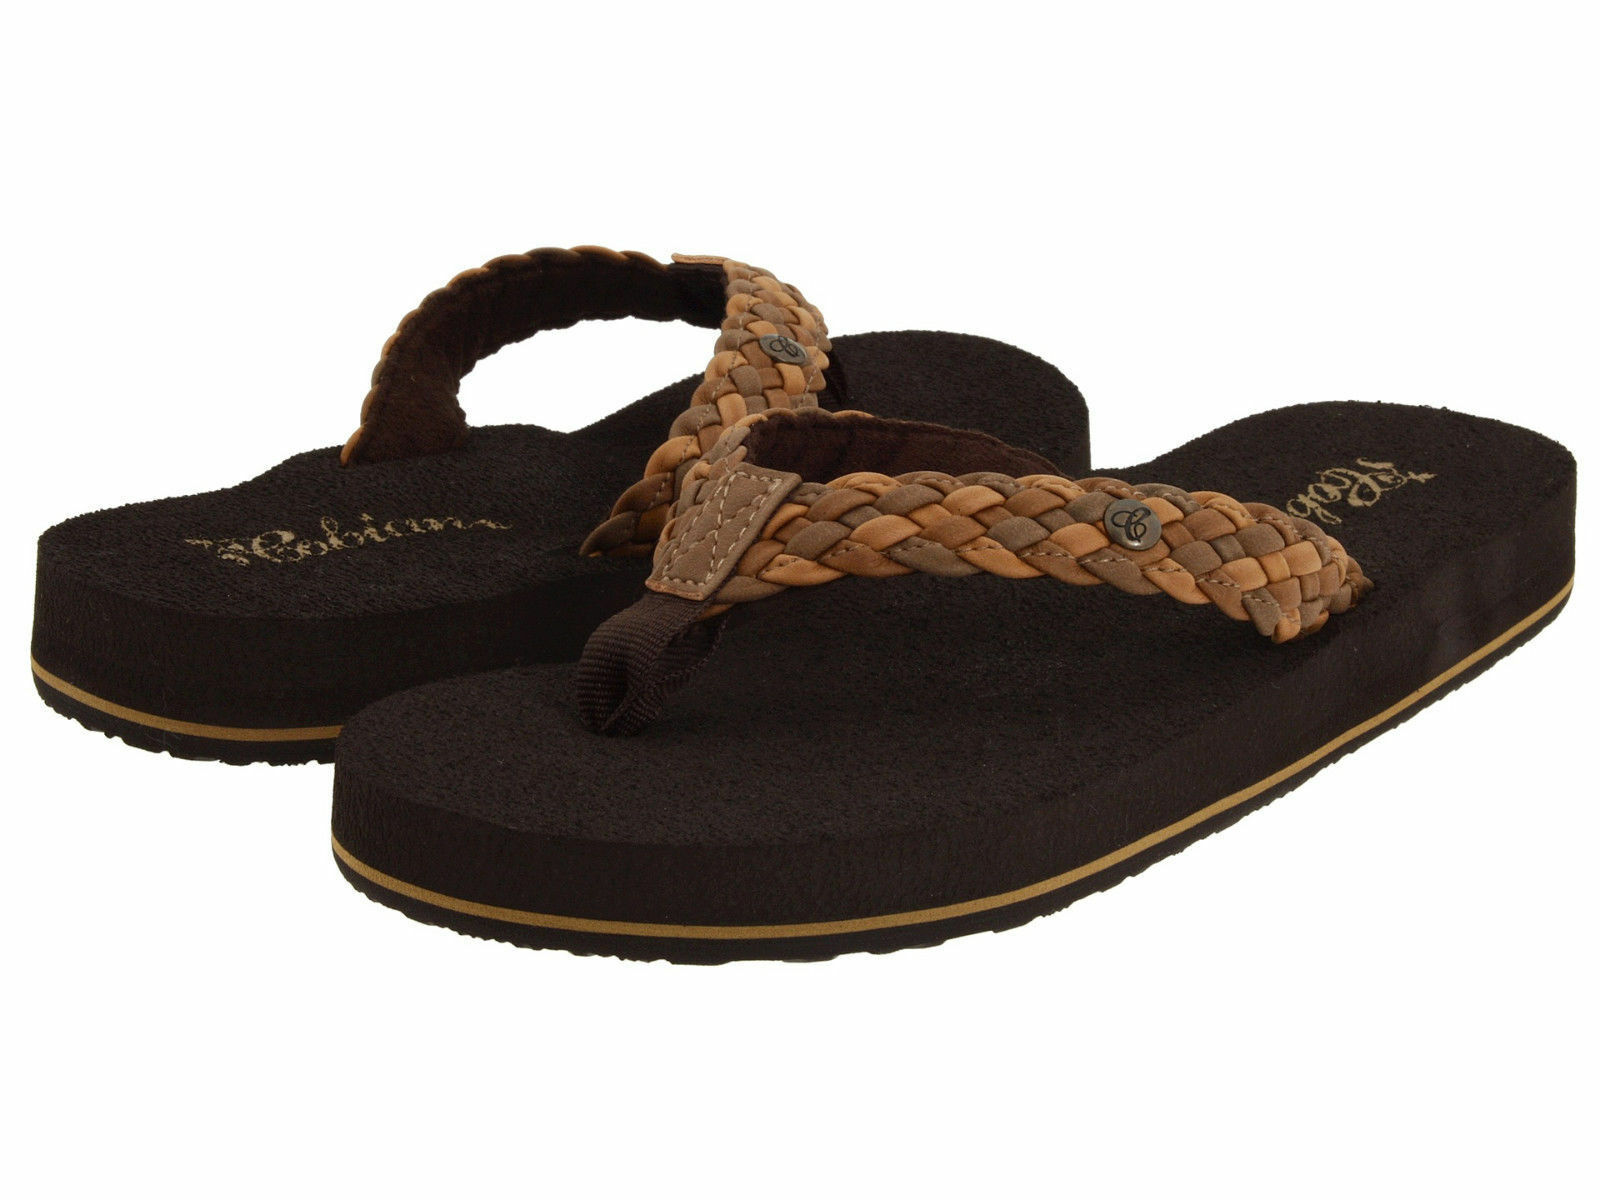 WOMEN COBIAN SANDAL FLIP FLOP BRAIDED BOUNCE NATURAL BRB10-965 NEW WITH TAGS